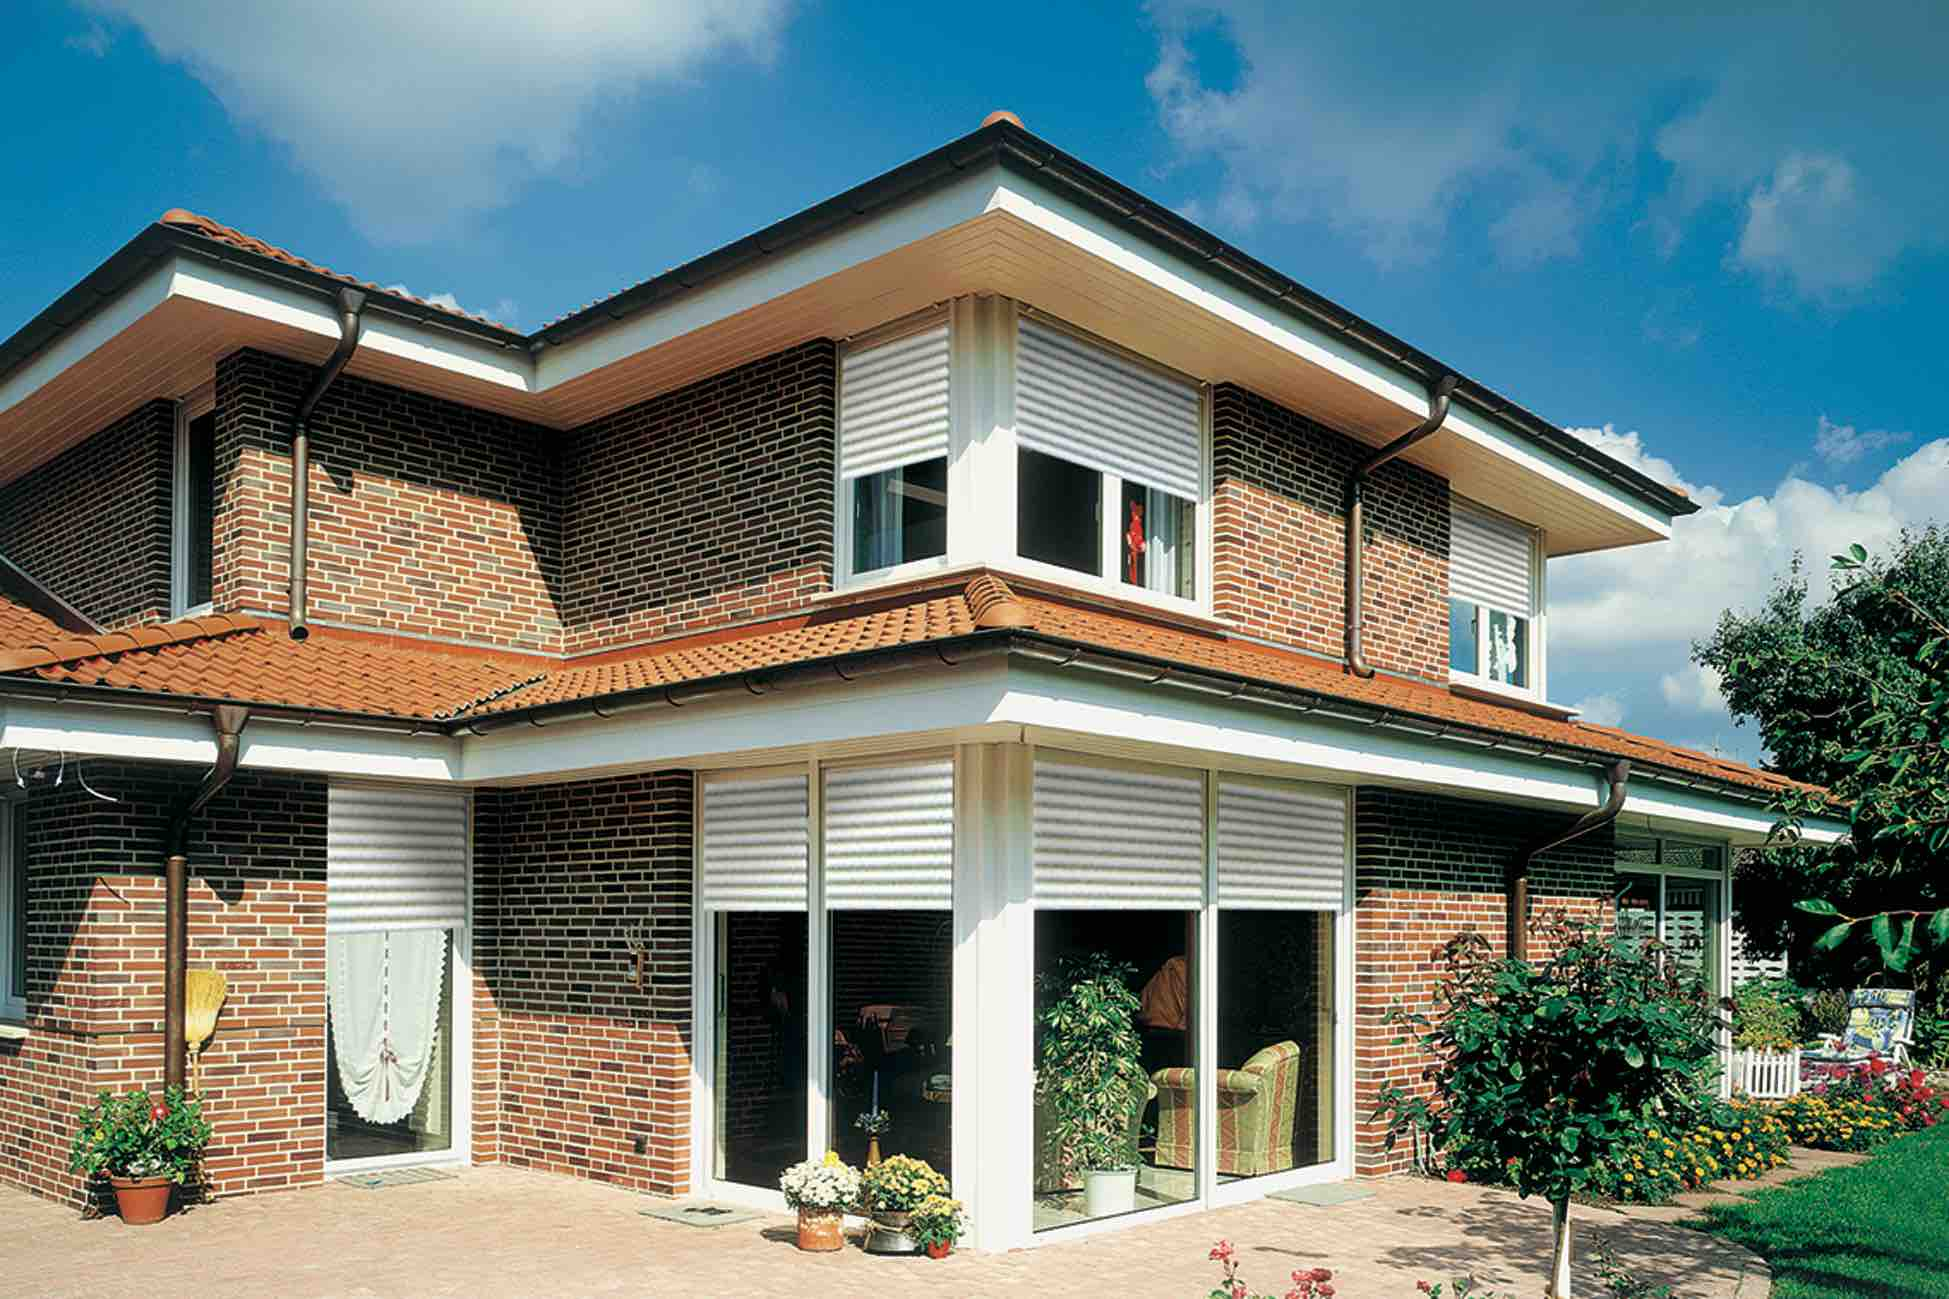 A lovely home in Thailand with VEKA uPVC windows and doors.